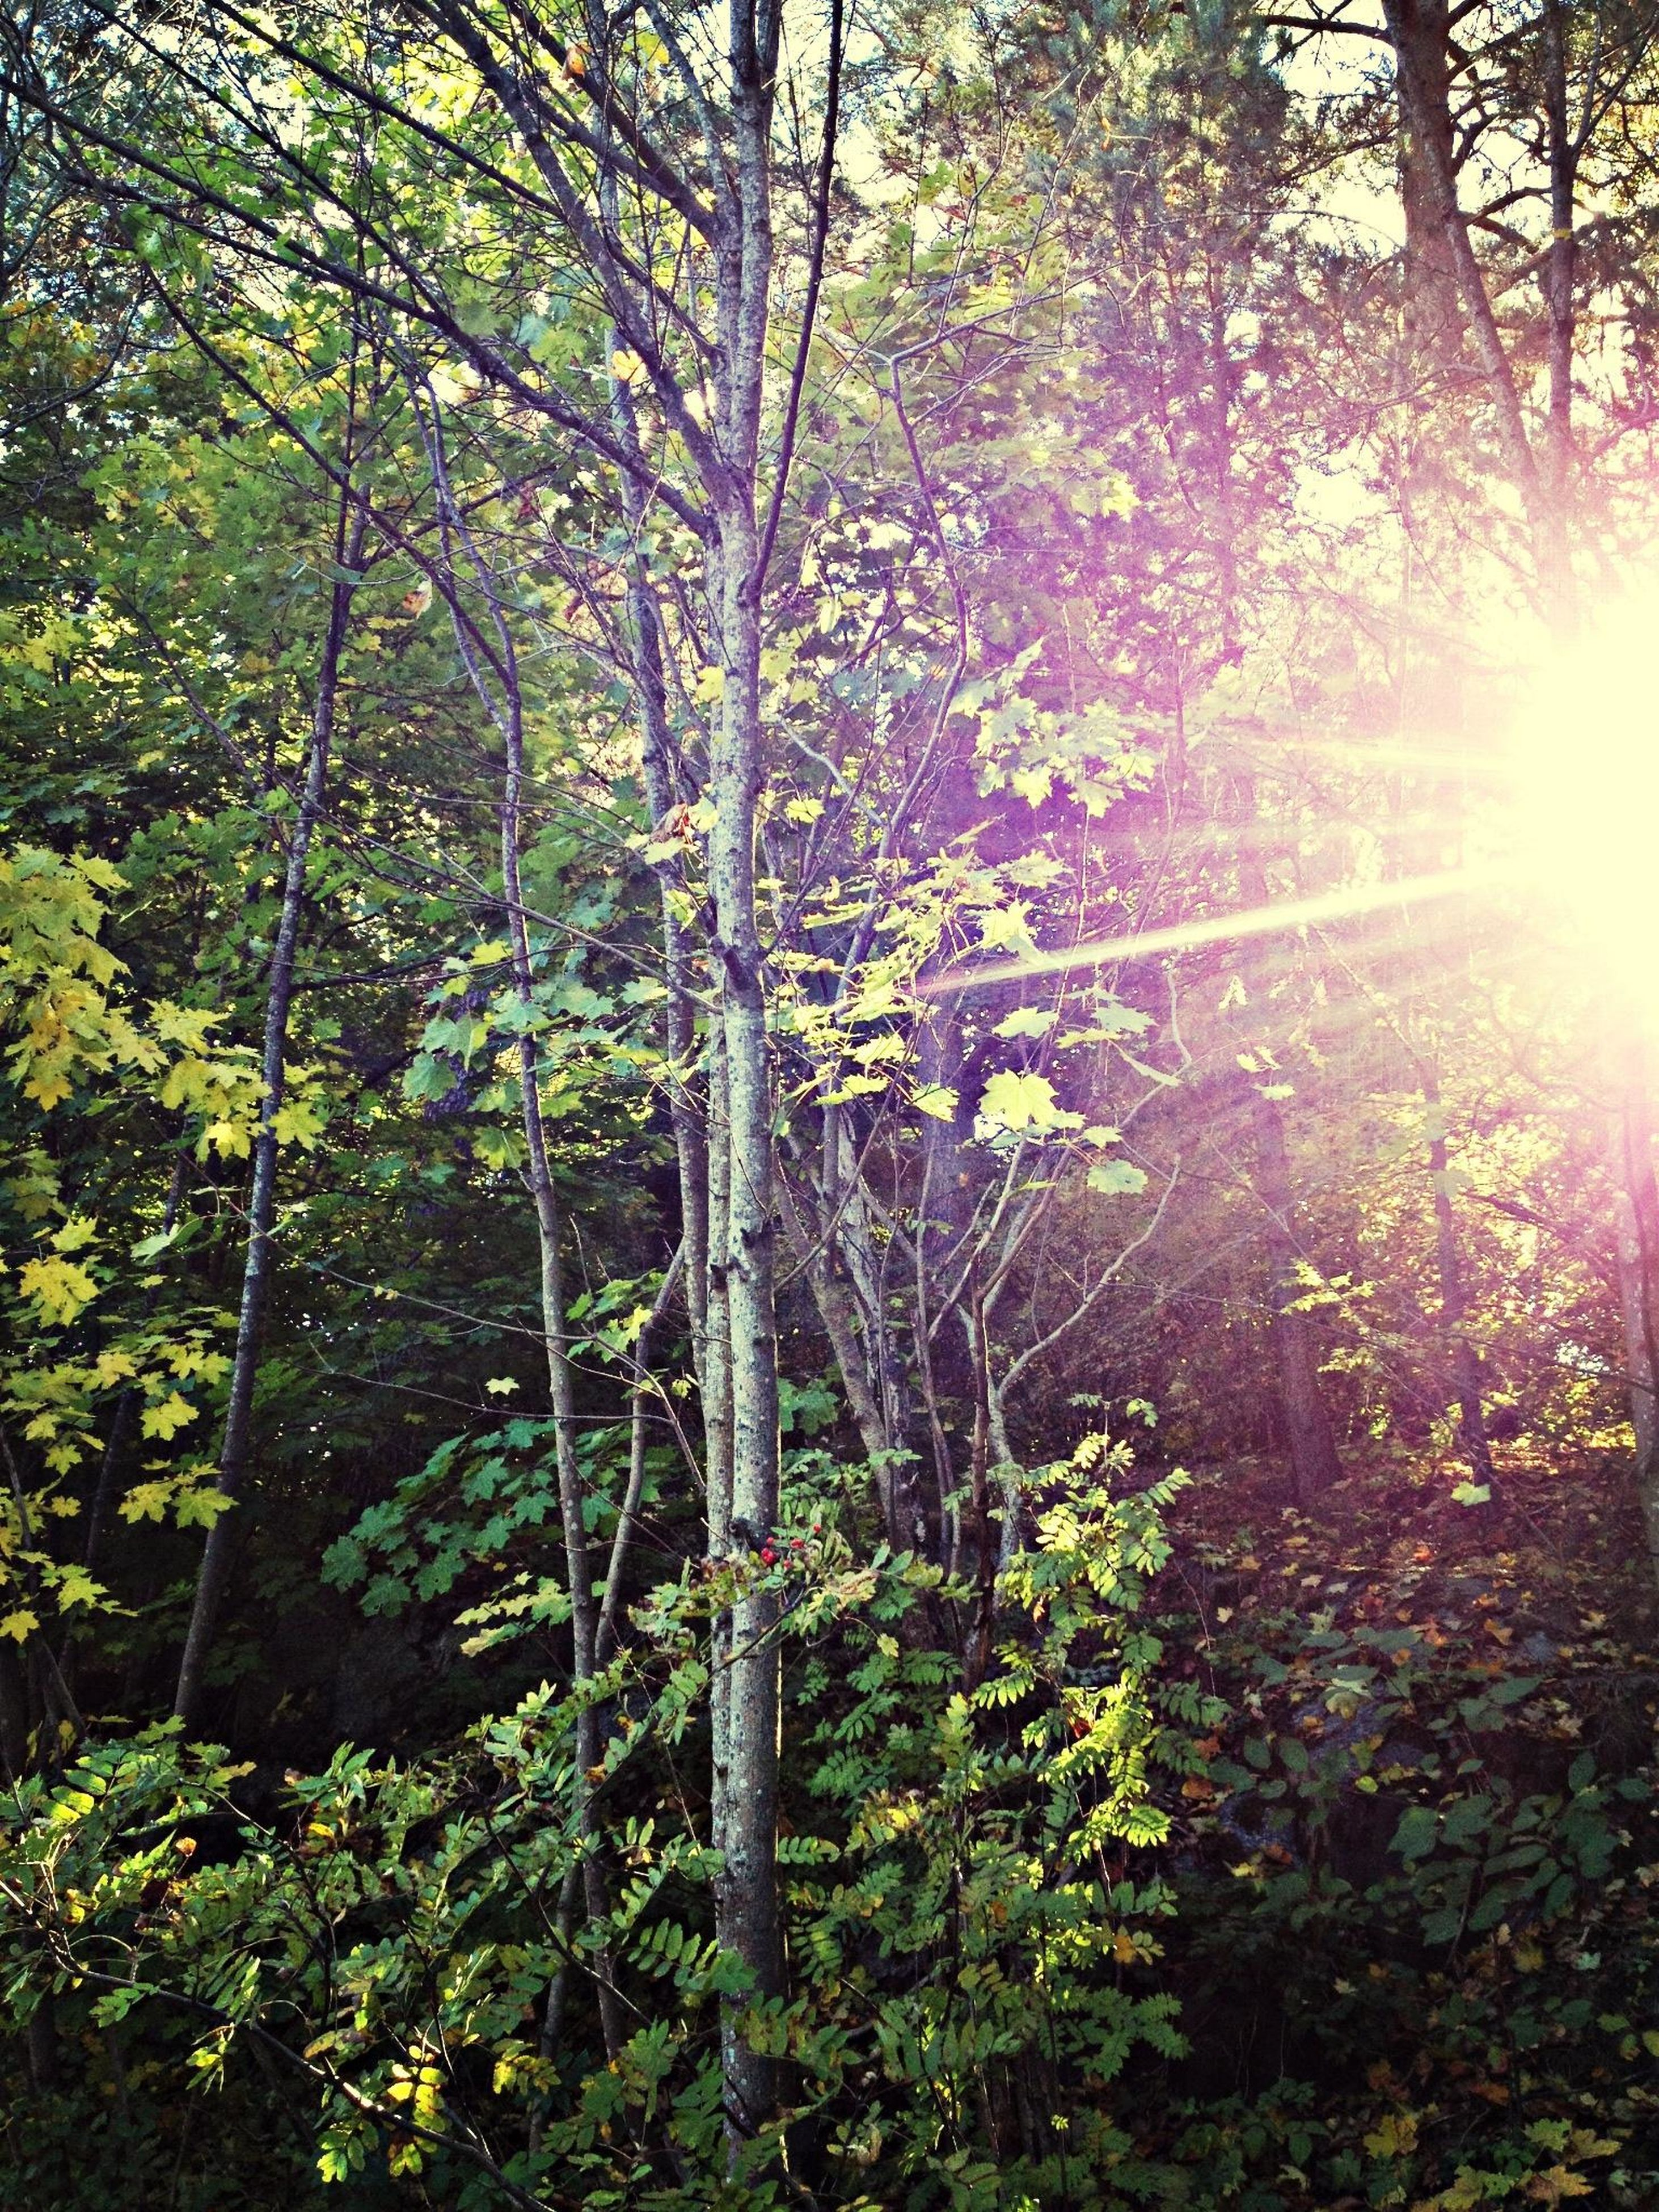 tree, growth, sunbeam, sun, sunlight, beauty in nature, nature, tranquility, flower, lens flare, plant, branch, tranquil scene, forest, scenics, freshness, tree trunk, outdoors, day, no people